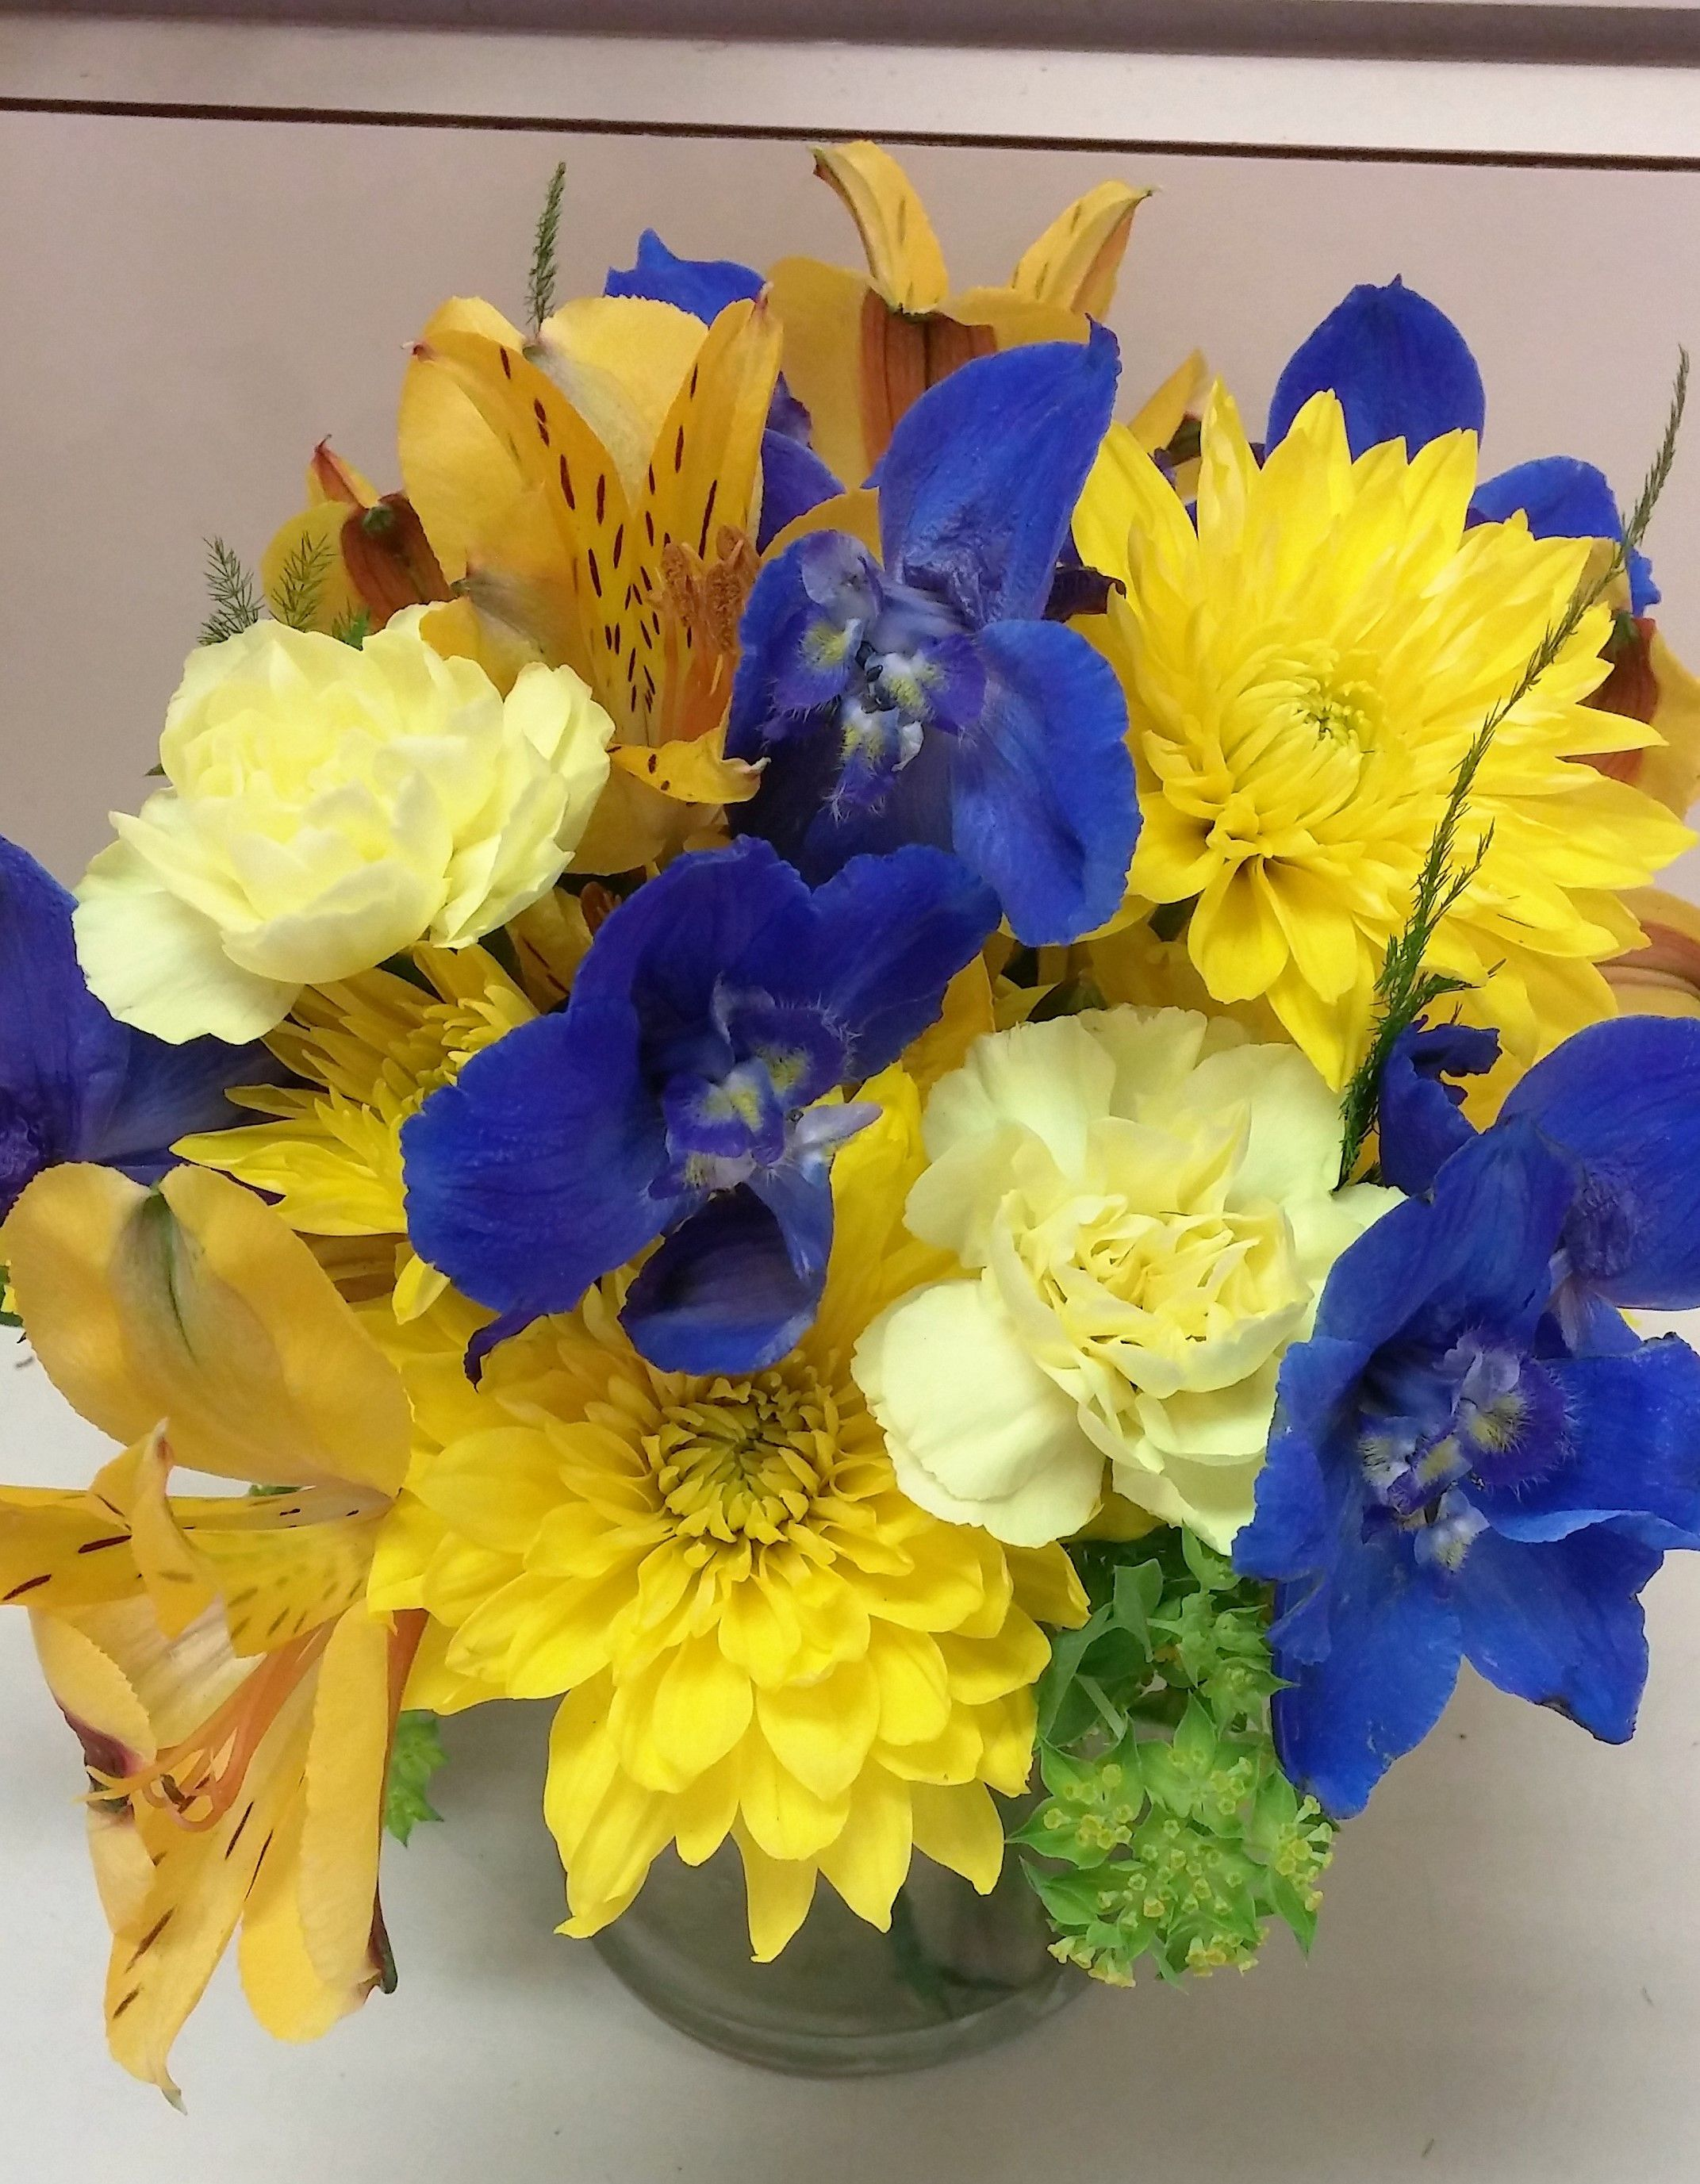 U of m flower arrangement maize and blue flowers blue delphinium u of m flower arrangement maize and blue flowers blue delphinium yellow alstroemeria yellow cushions yellow mini carnations perfect for a cocktail izmirmasajfo